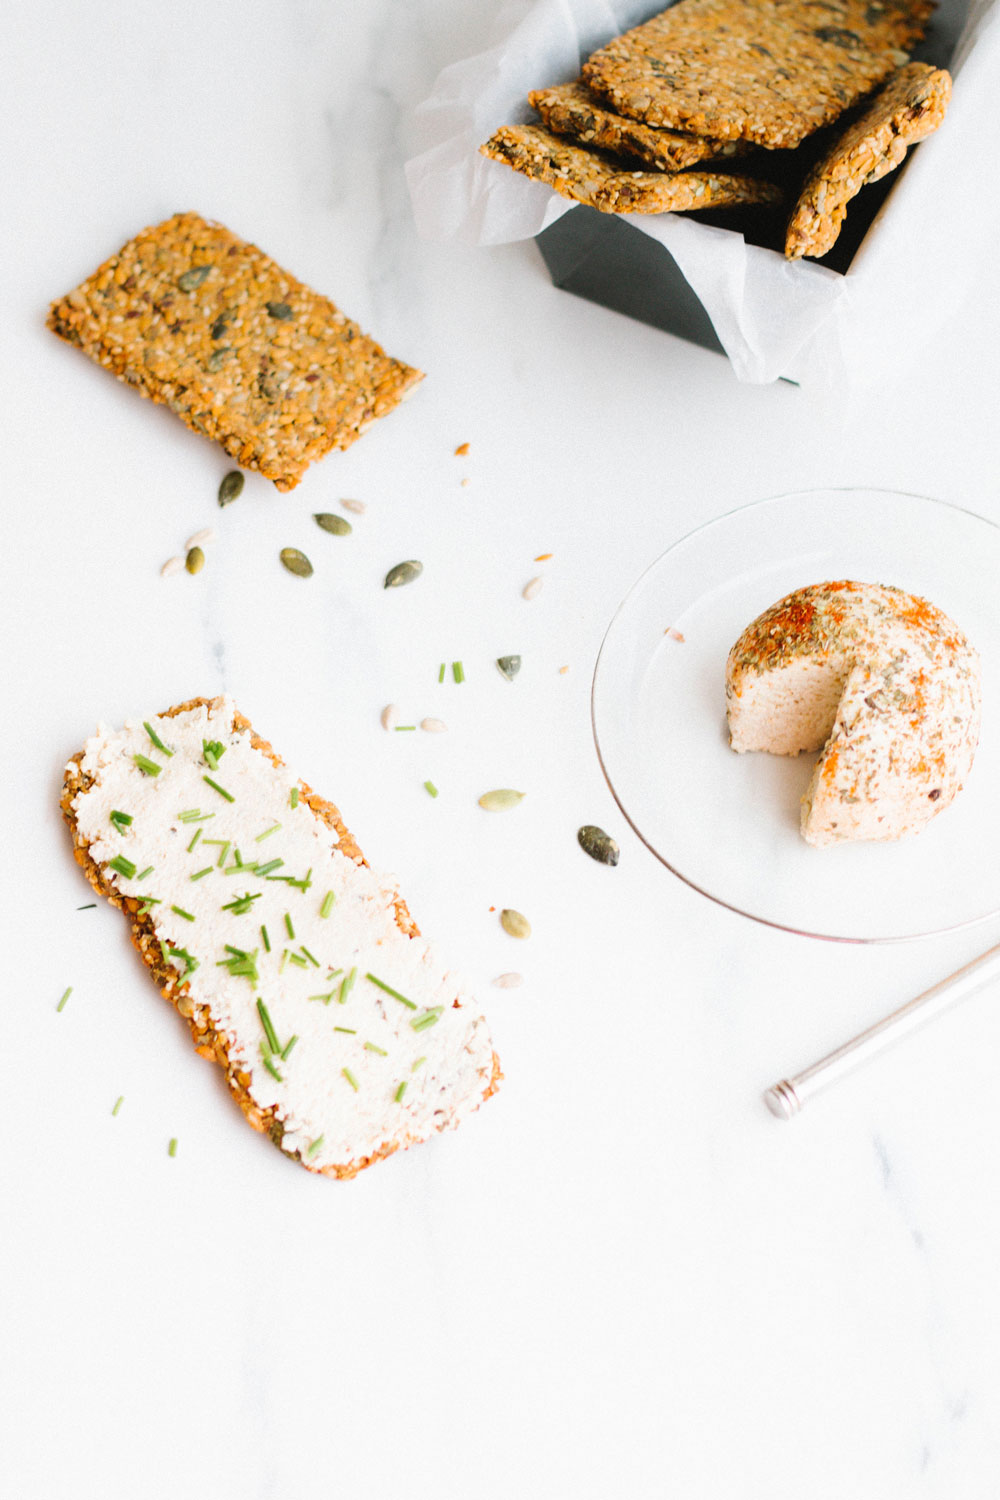 Gluten-Free Super Seed Crackers to eat with any spread, dip or cheese, or crumbled and sprinkled on top of soups, salads, and breakfast cereal!